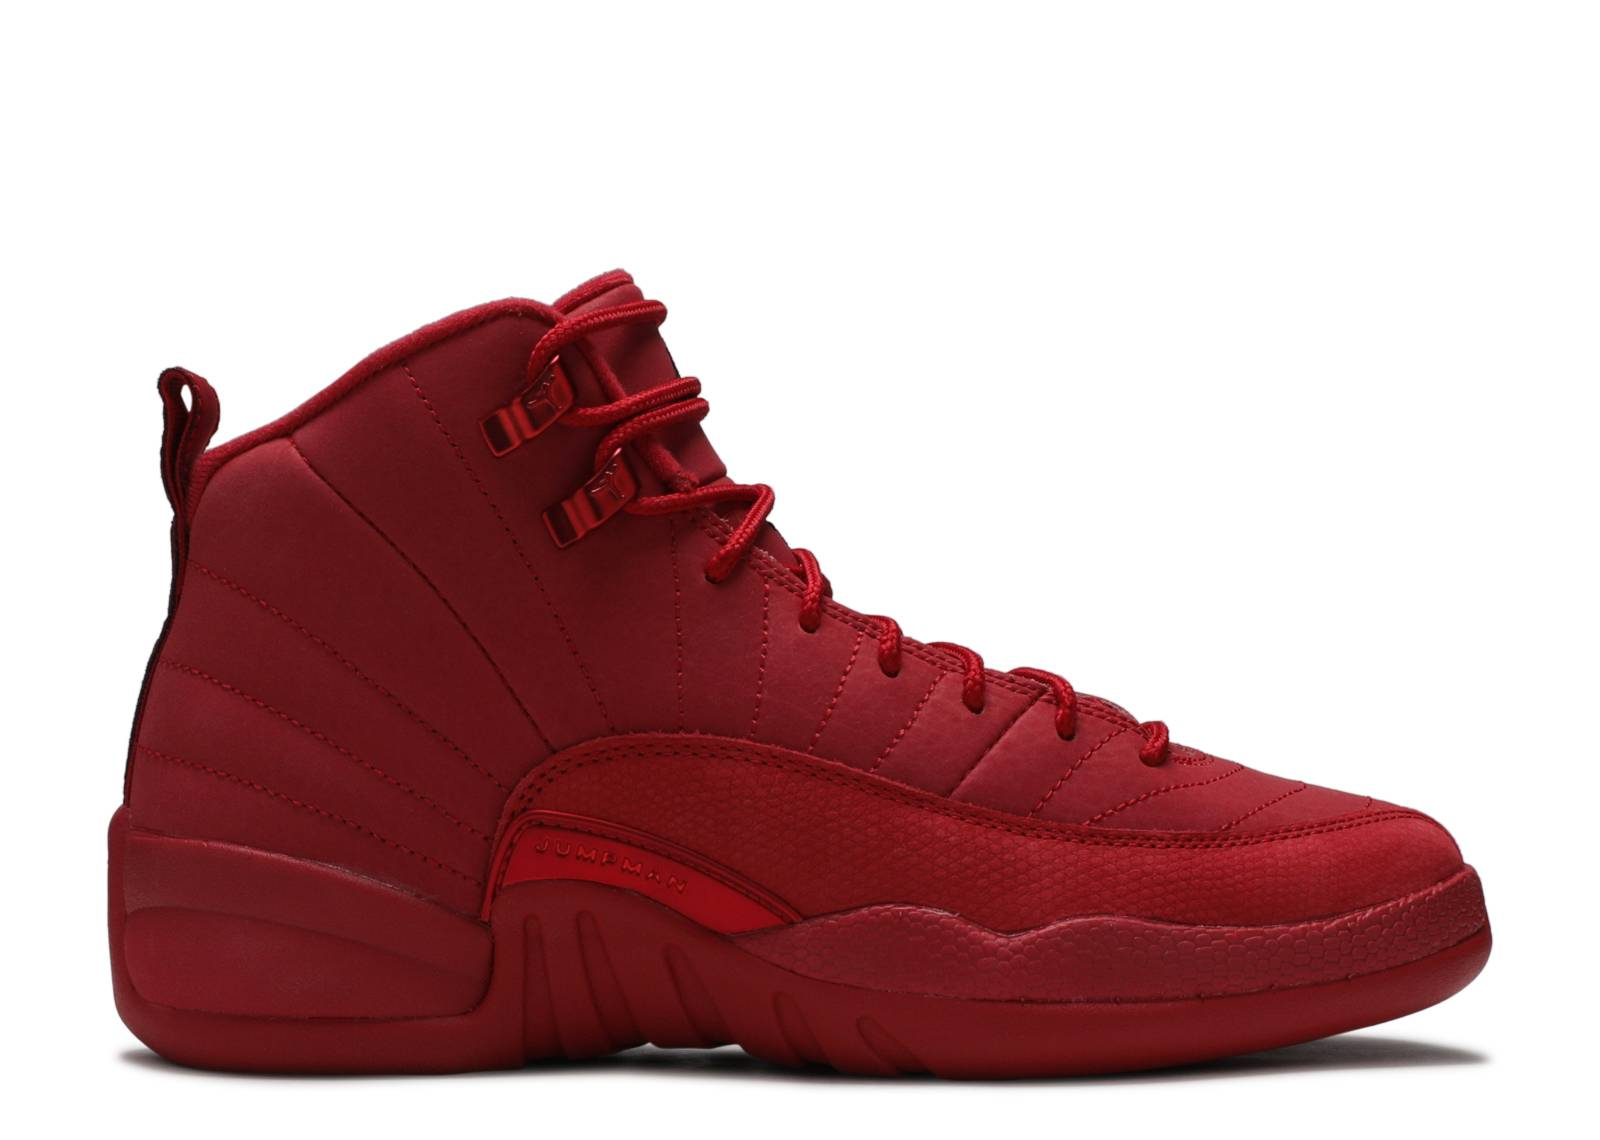 e02f402014ec1c Air Jordan 12 Retro (gs) - Air Jordan - 153265 601 - gym red black ...